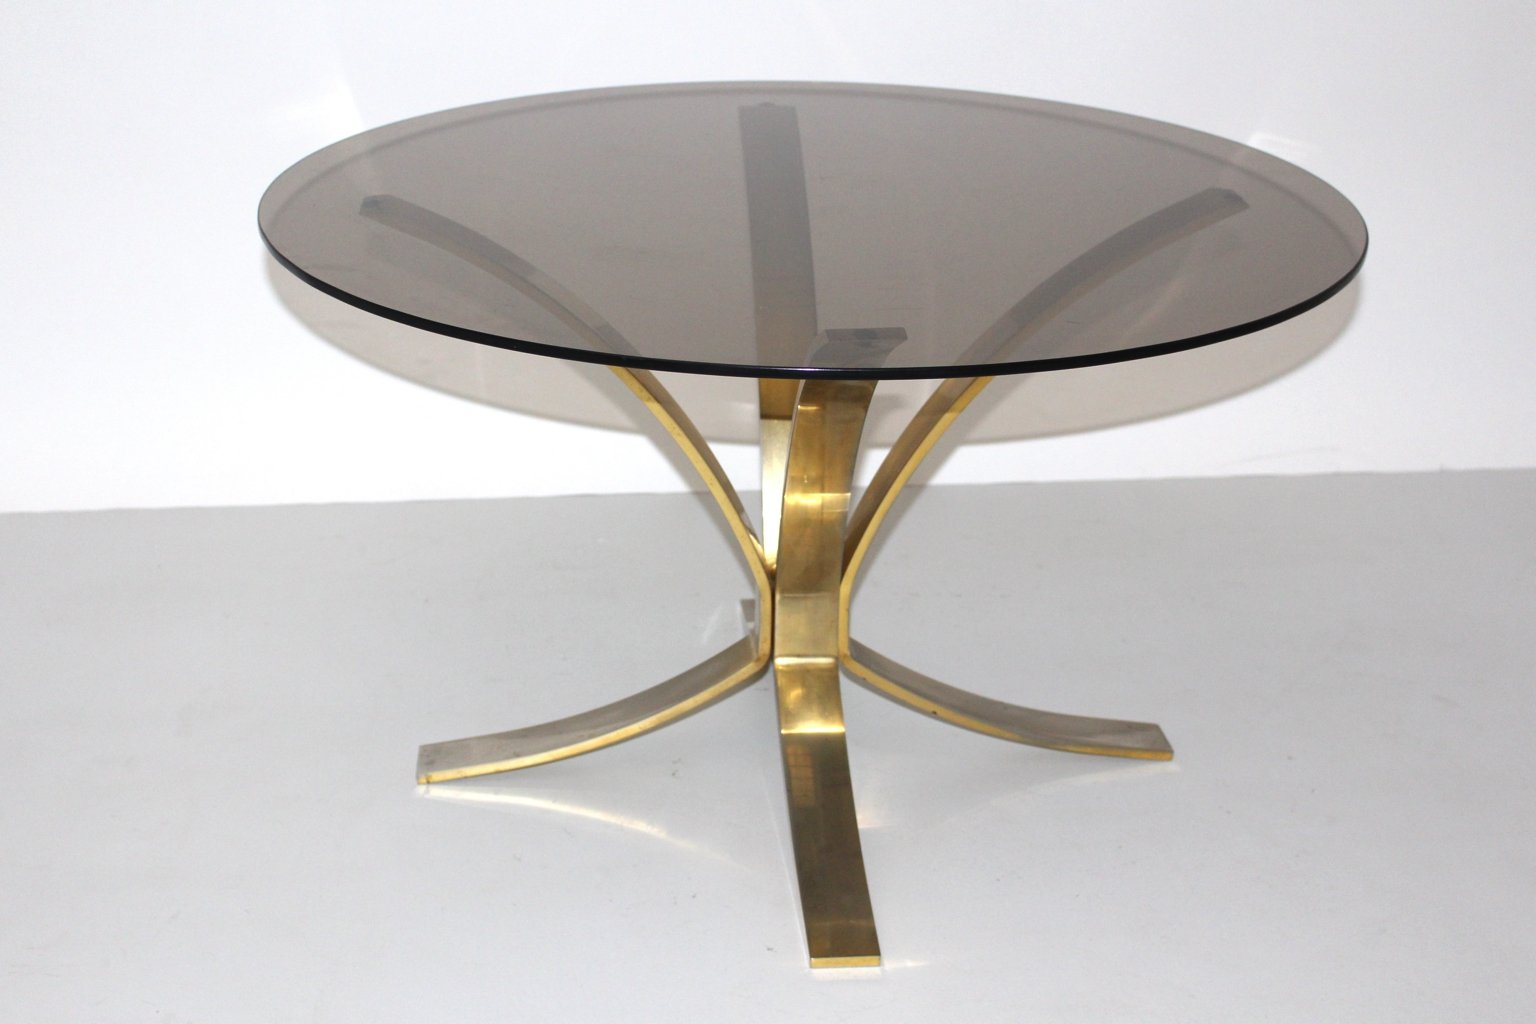 Round Coffee Table By Roger Sprunger For Dunbar Furniture